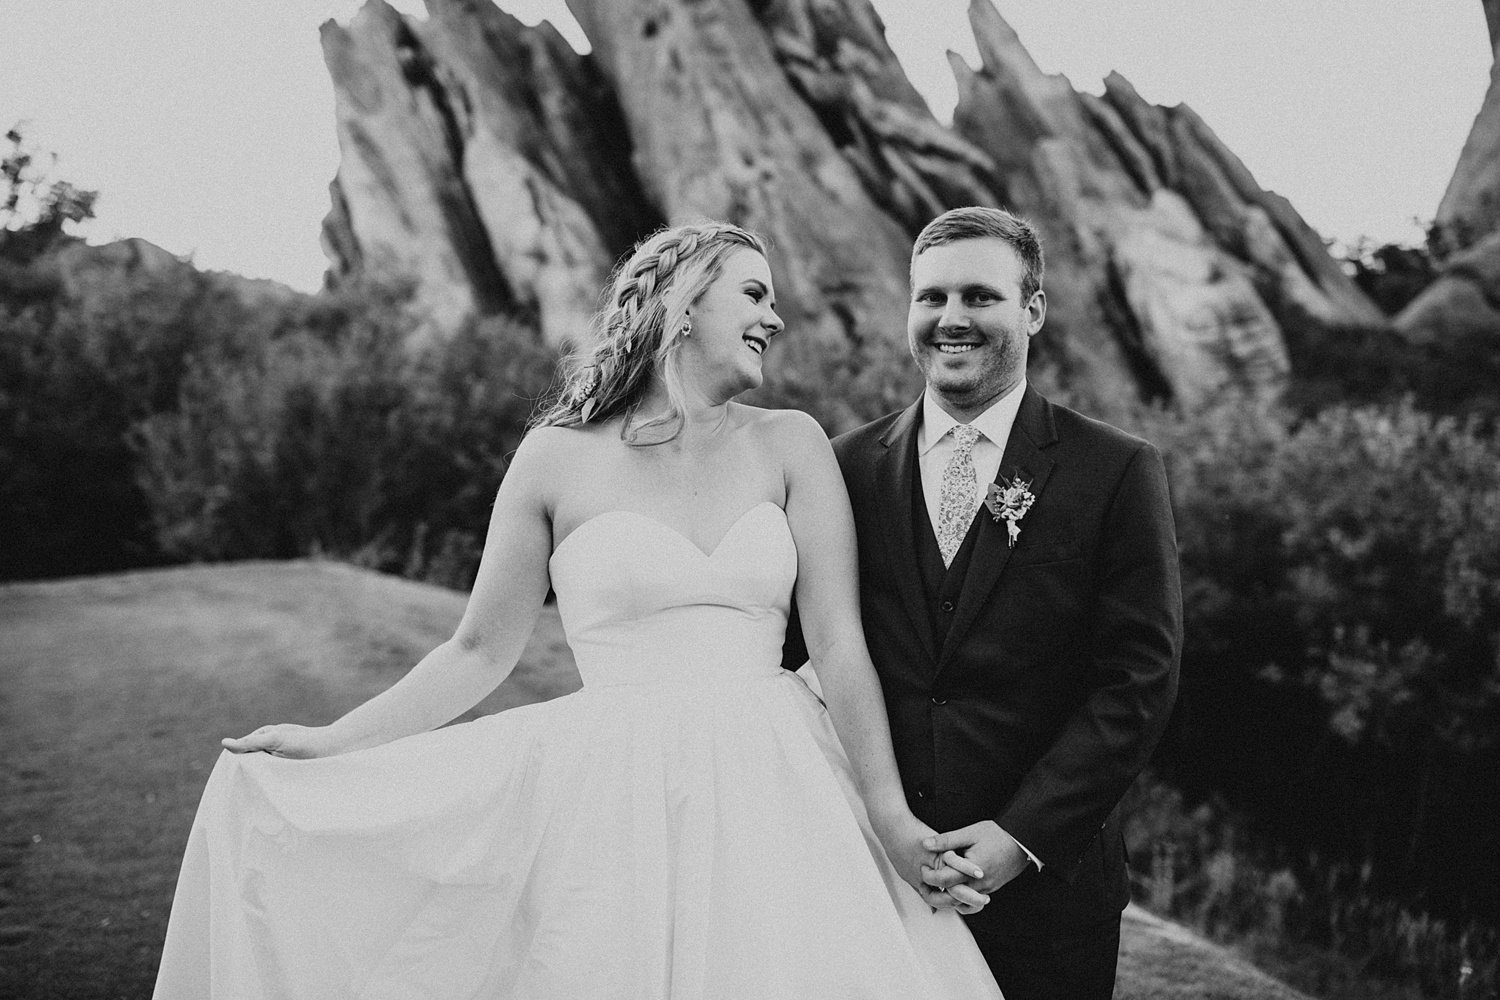 Arrowhead Golf Club Wedding | Littleton Colorado Wedding Venue | Bride and Groom Poses | Sunset Wedding Pictures | Cassie Madden Photography